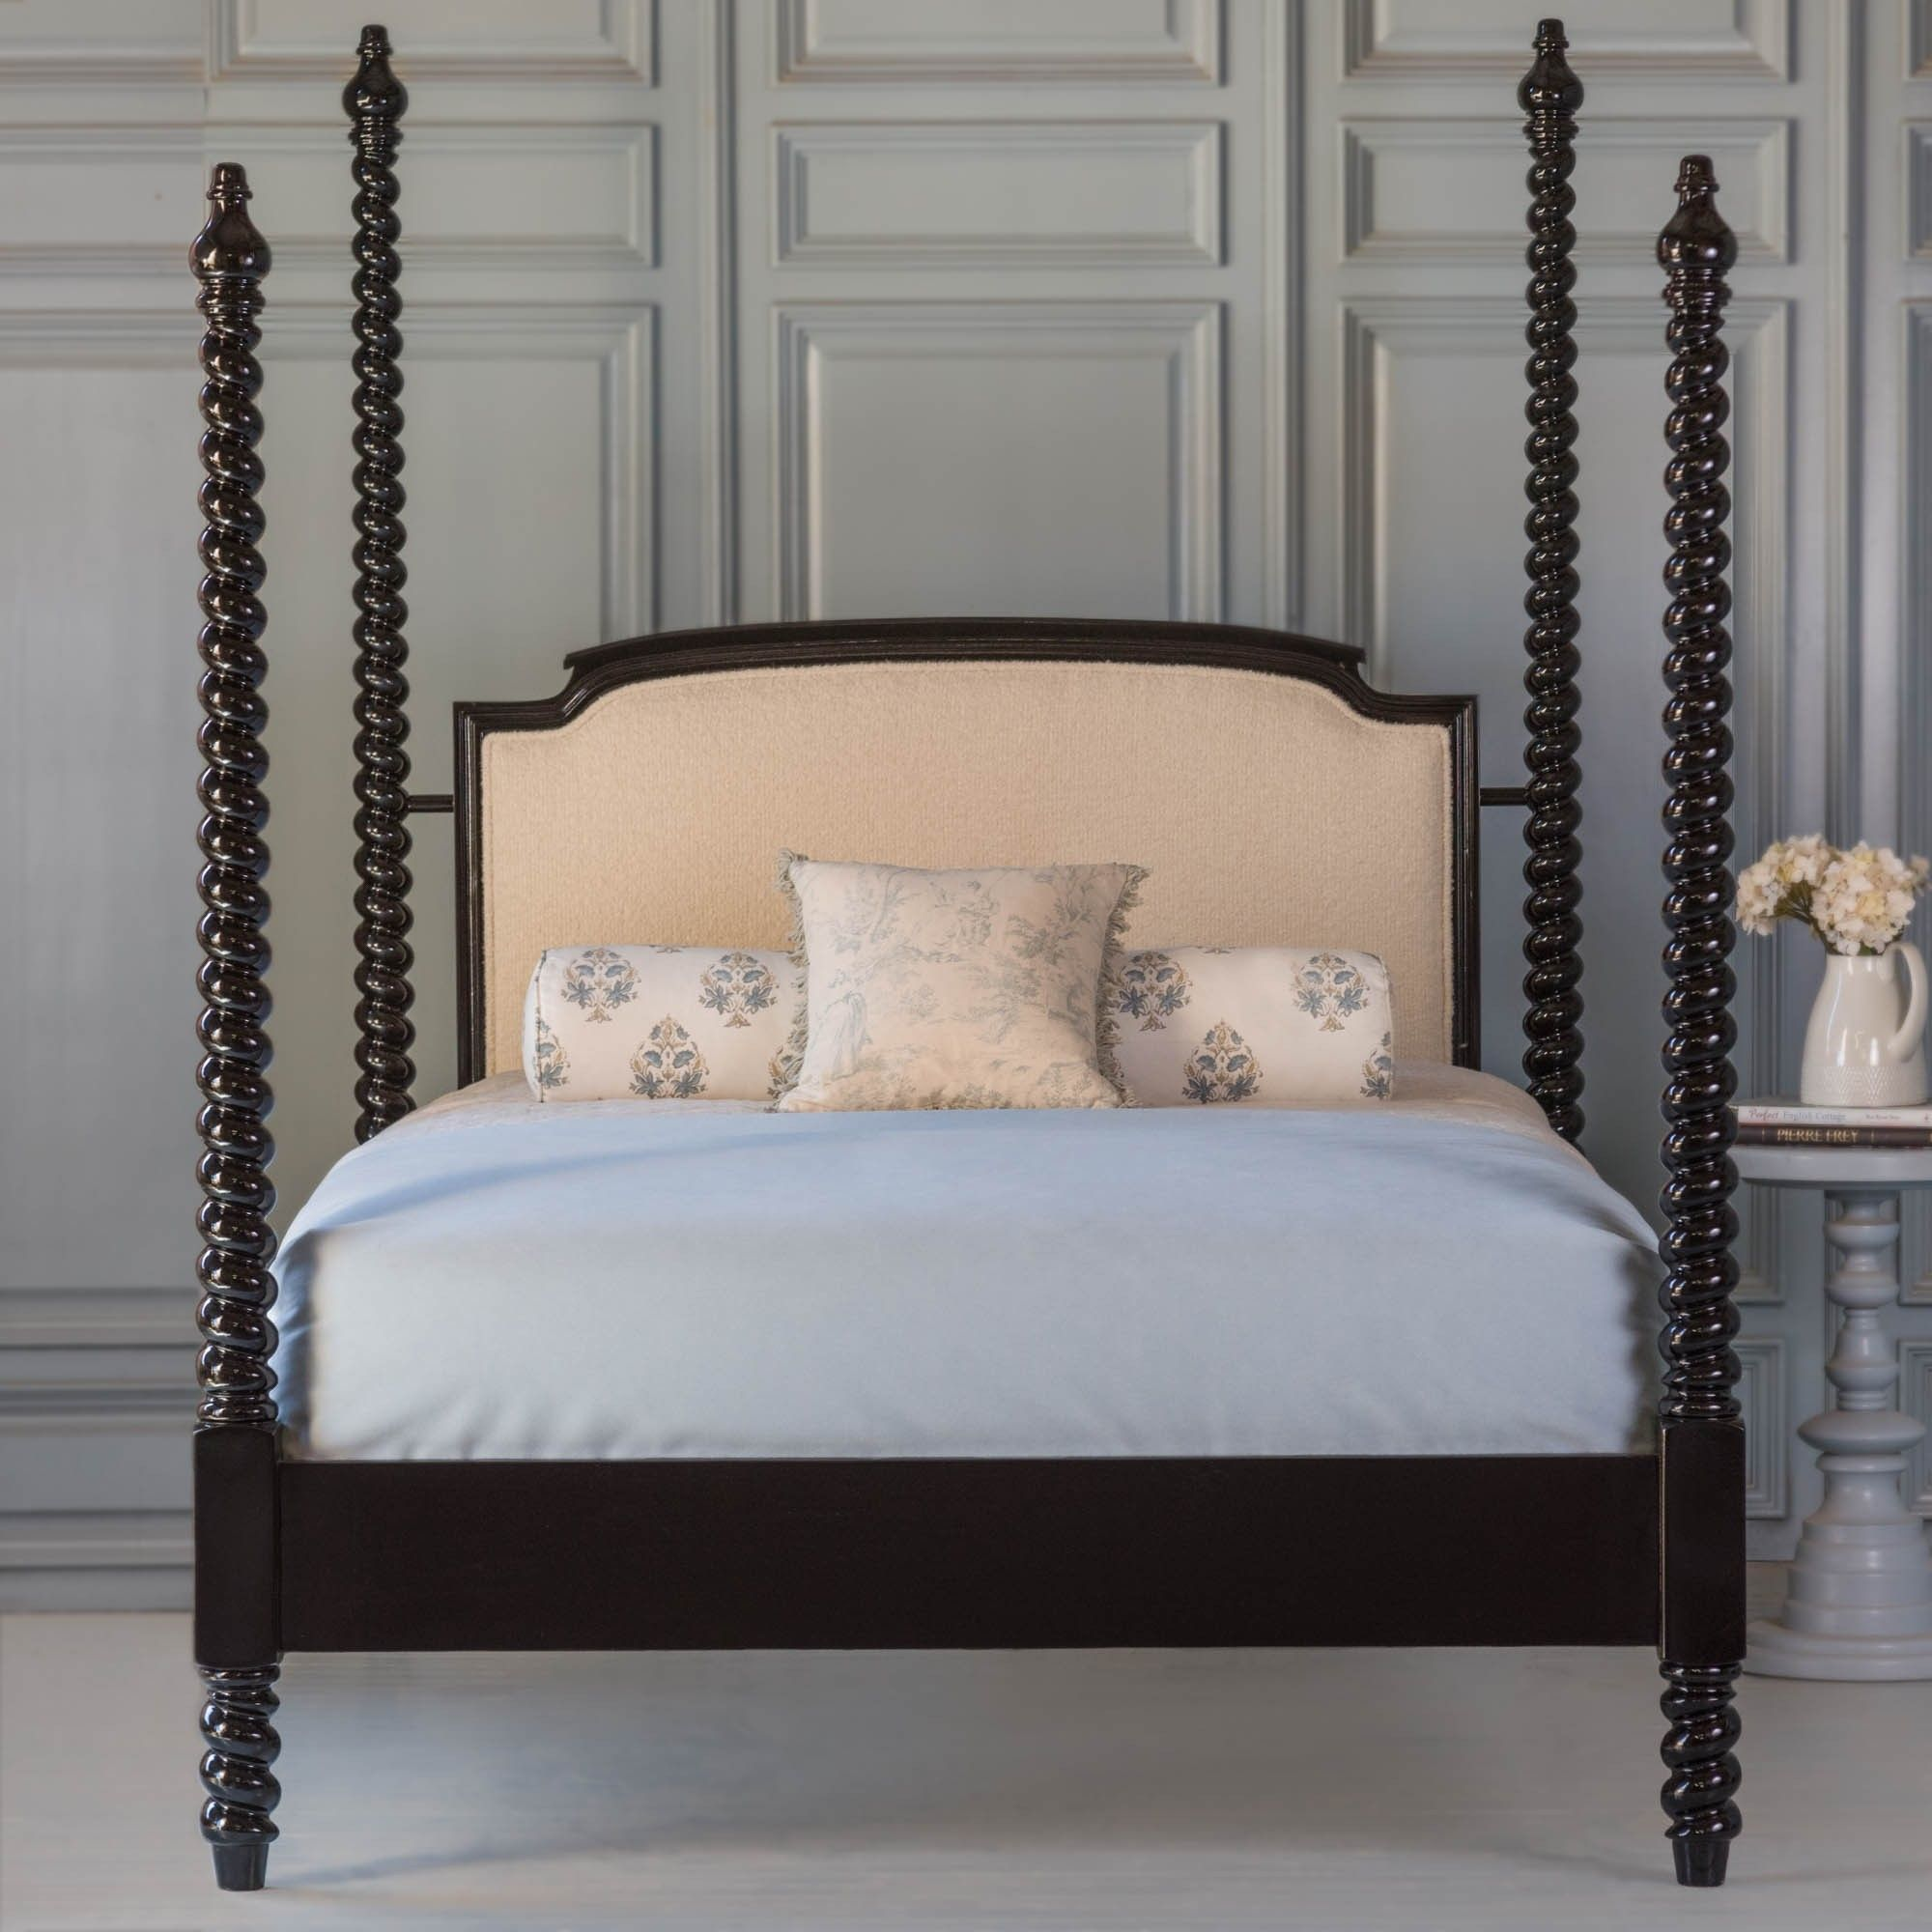 Dahlia Four Poster Bed By The Beautiful Bed Company Beautiful Bedding Four Poster Bed Bed Company